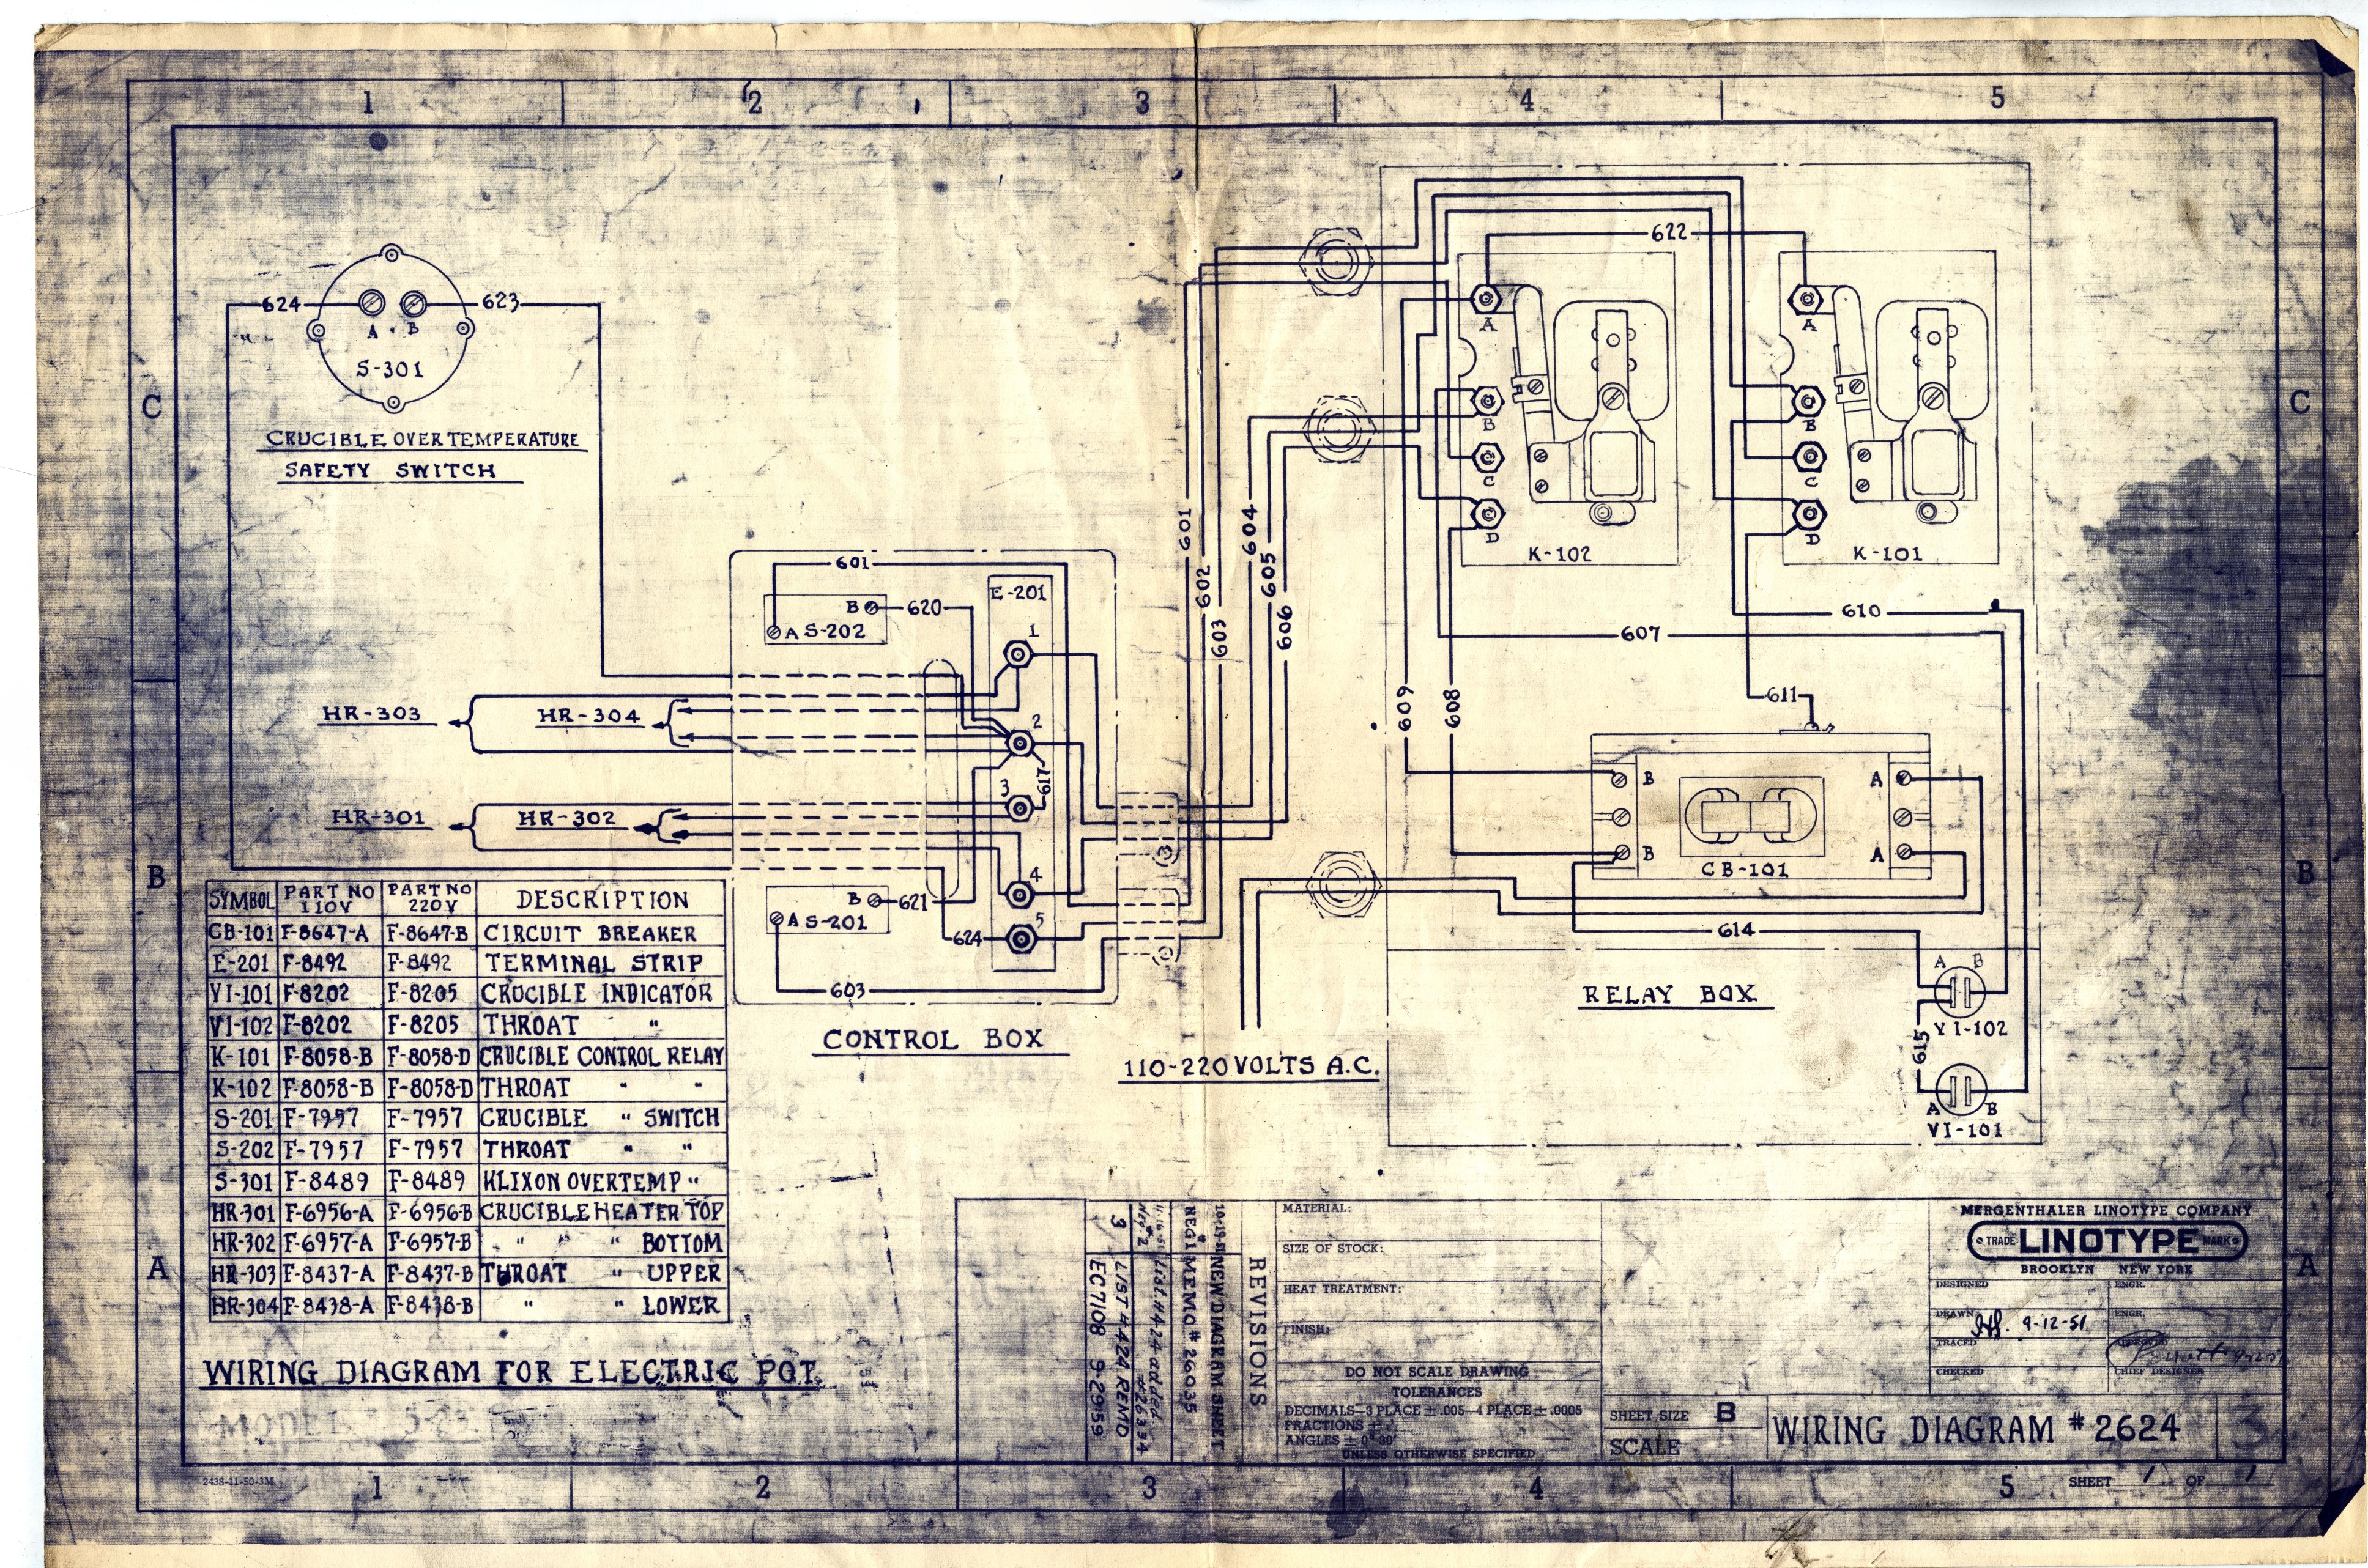 electric diagrams electric image wiring diagram mergenthaler linotype wiring diagrams on electric diagrams